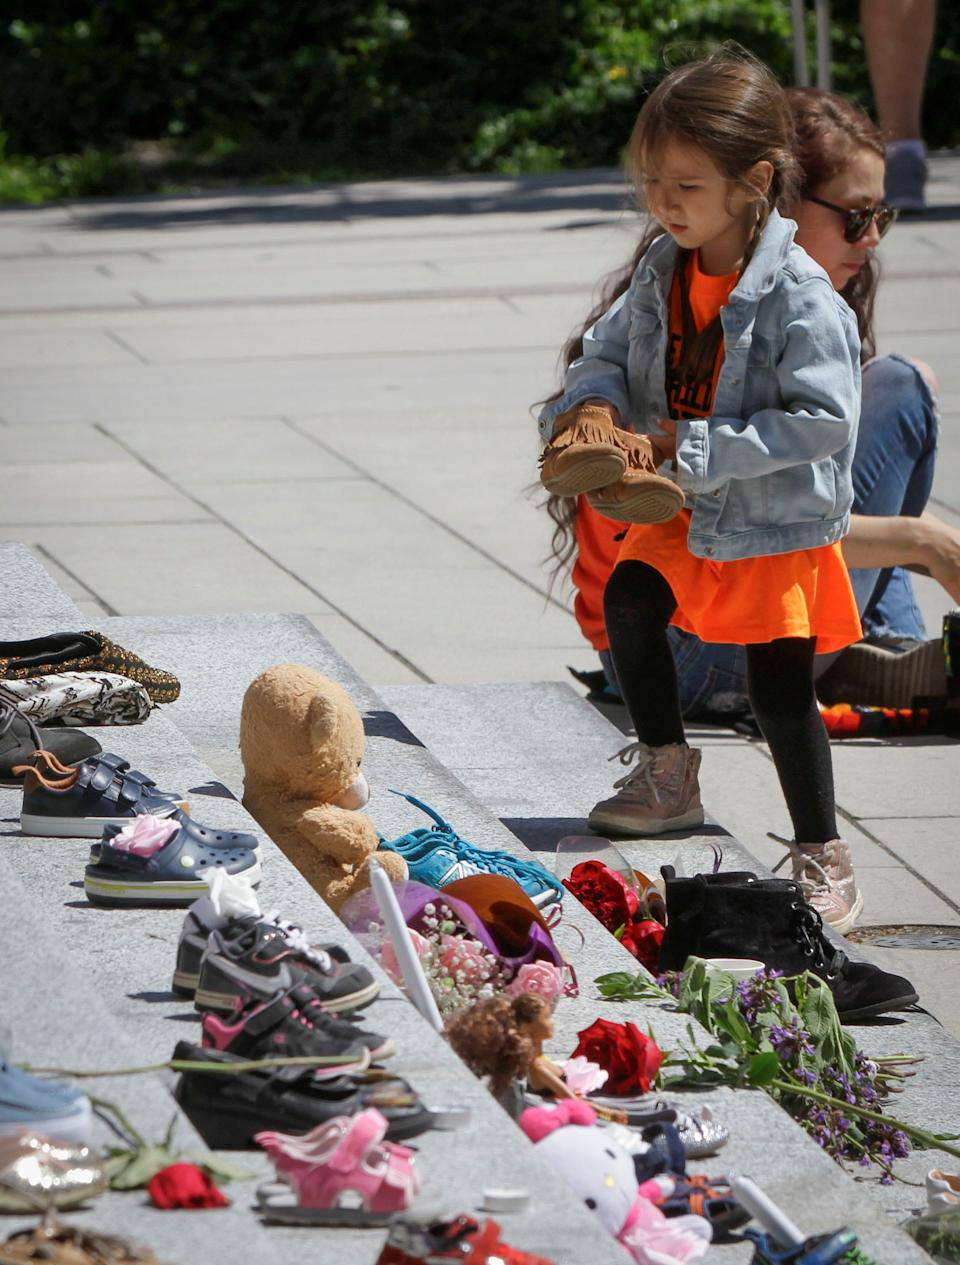 <p>A girl tries to put a pair of shoes on the staircase while attending a memorial event for the 215 children whose remains have been found buried at a former Kamloops residential school outside Vancouver Art Gallery in Vancouver, British Columbia, Canada, May 29, 2021 .The reported discovery of the remains of 215 indigenous children at a former residential school in Kamloops in western Canada has shocked Canadian people.In a press release on Friday, the British Columbia Assembly of First Nations said it is grieving the location of the 215 children. (Photo by Liang Sen/Xinhua via Getty Images)</p>